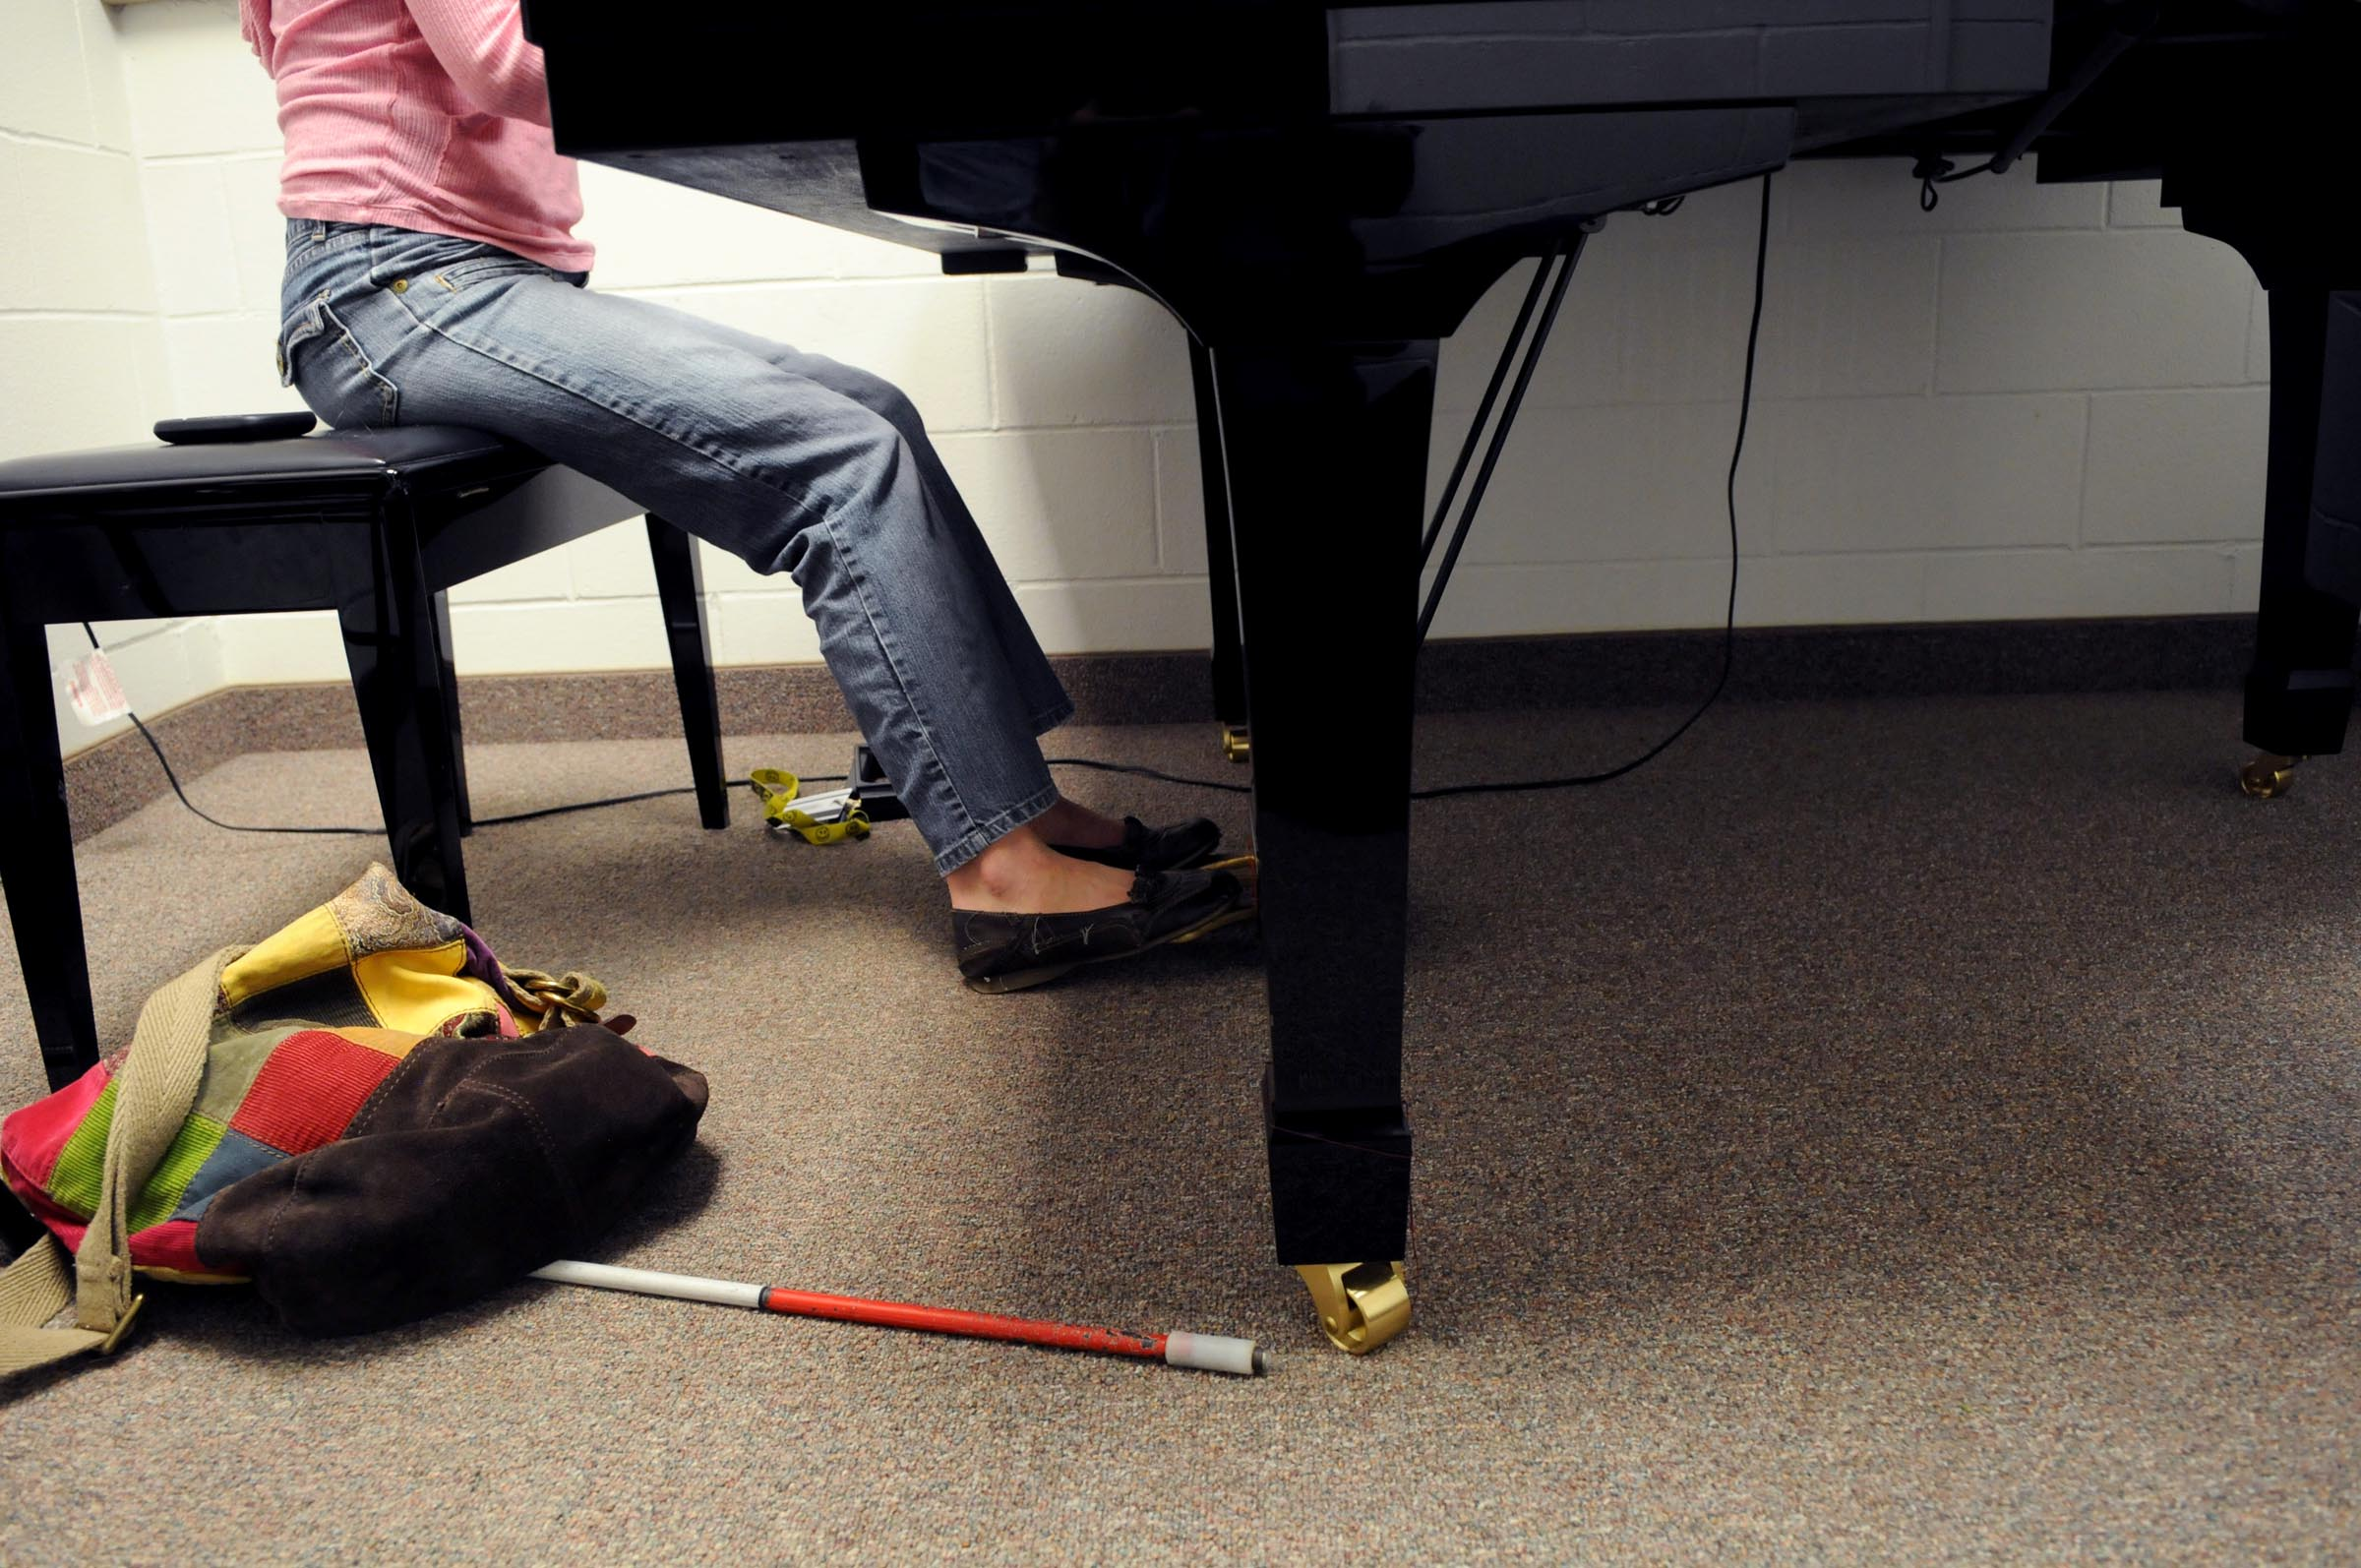 Piano player with white tipped cane